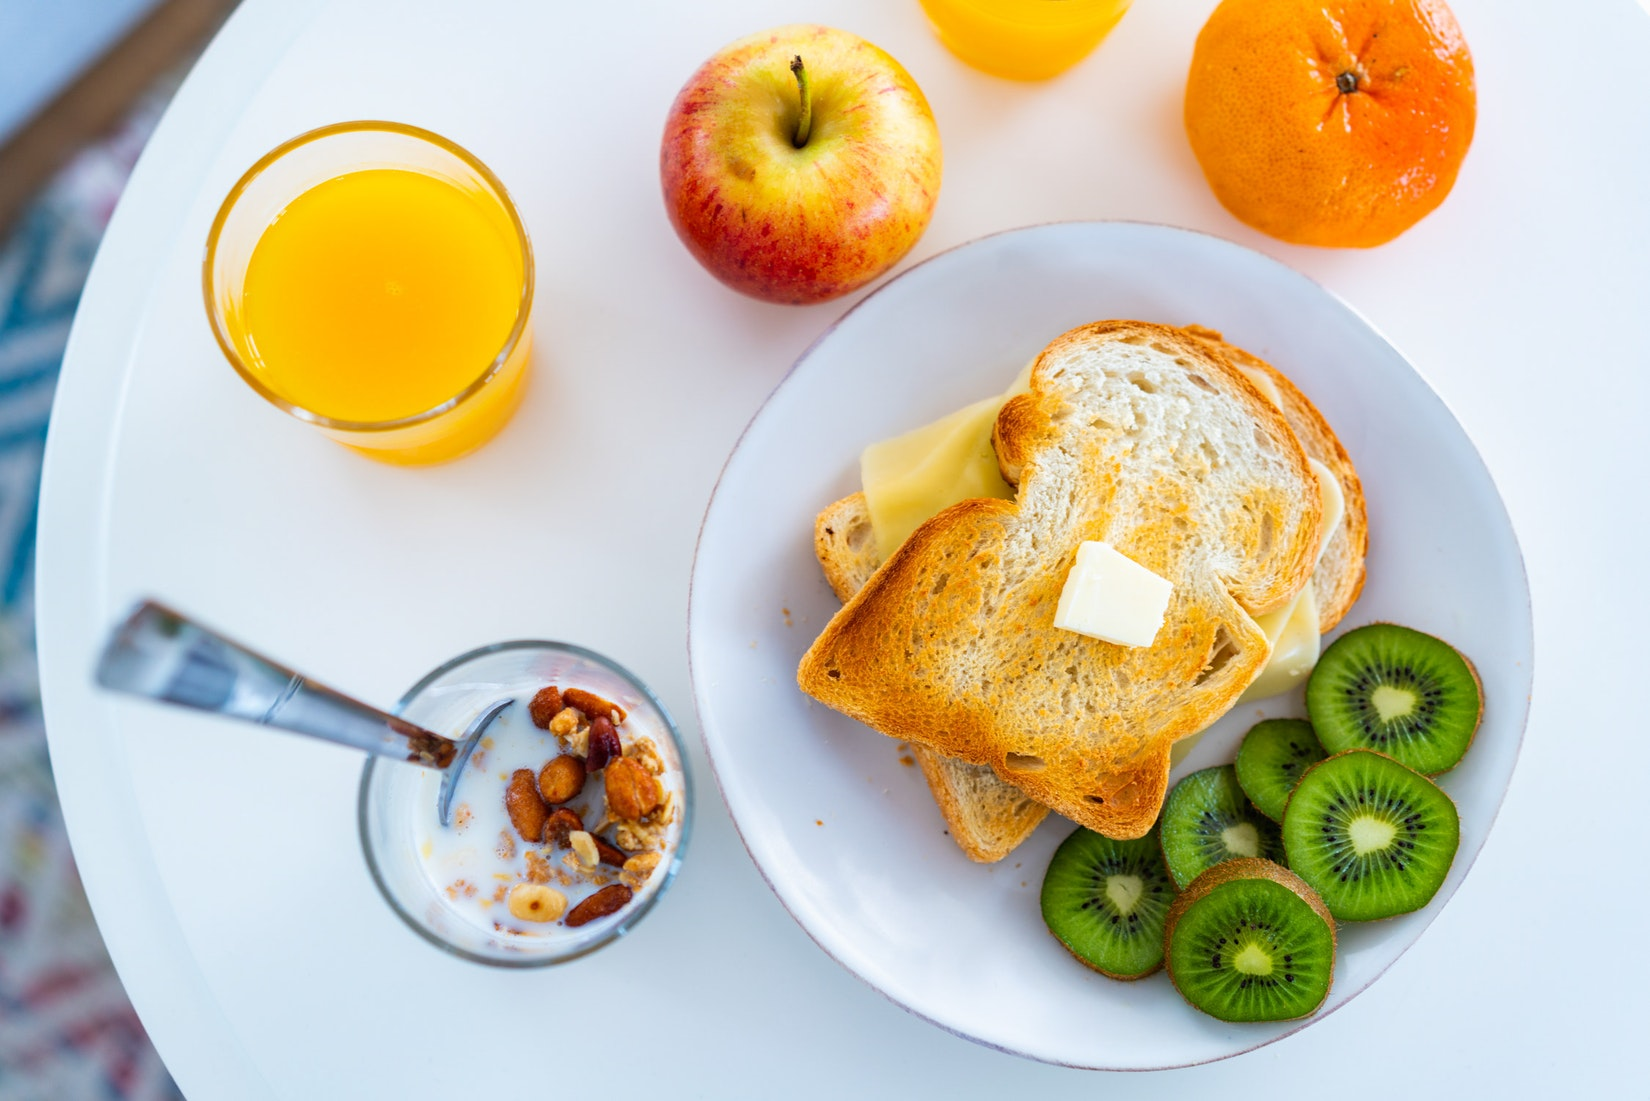 Healthy breakfast with cereal, toast, kiwi, orange juice, apples and oranges.